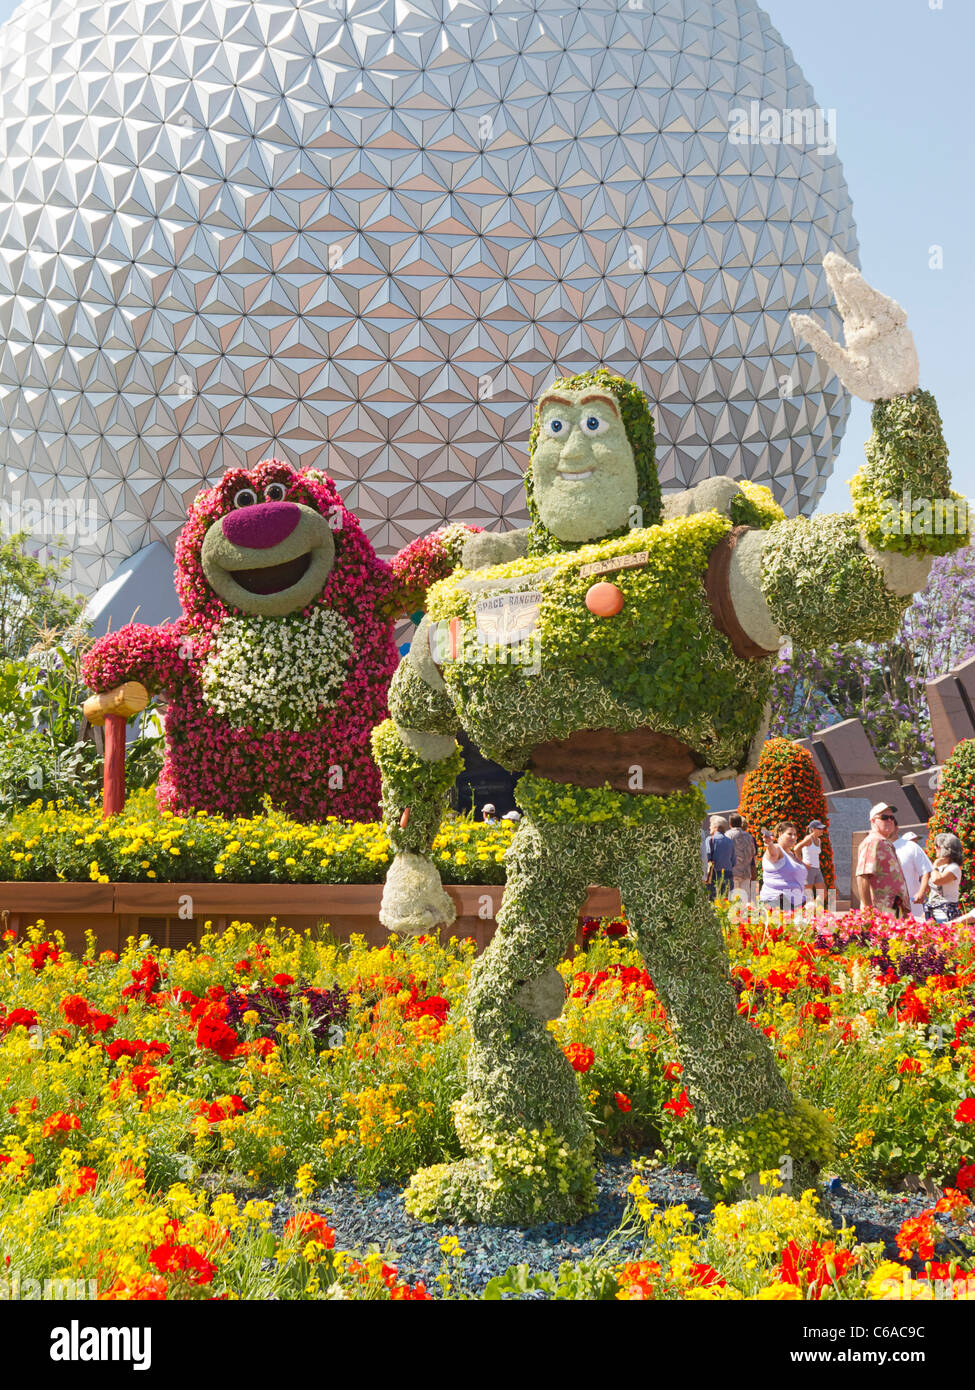 Buzz Lightyear Topiary plant at Epcot, Disney World, Florida, USA. - Stock Image